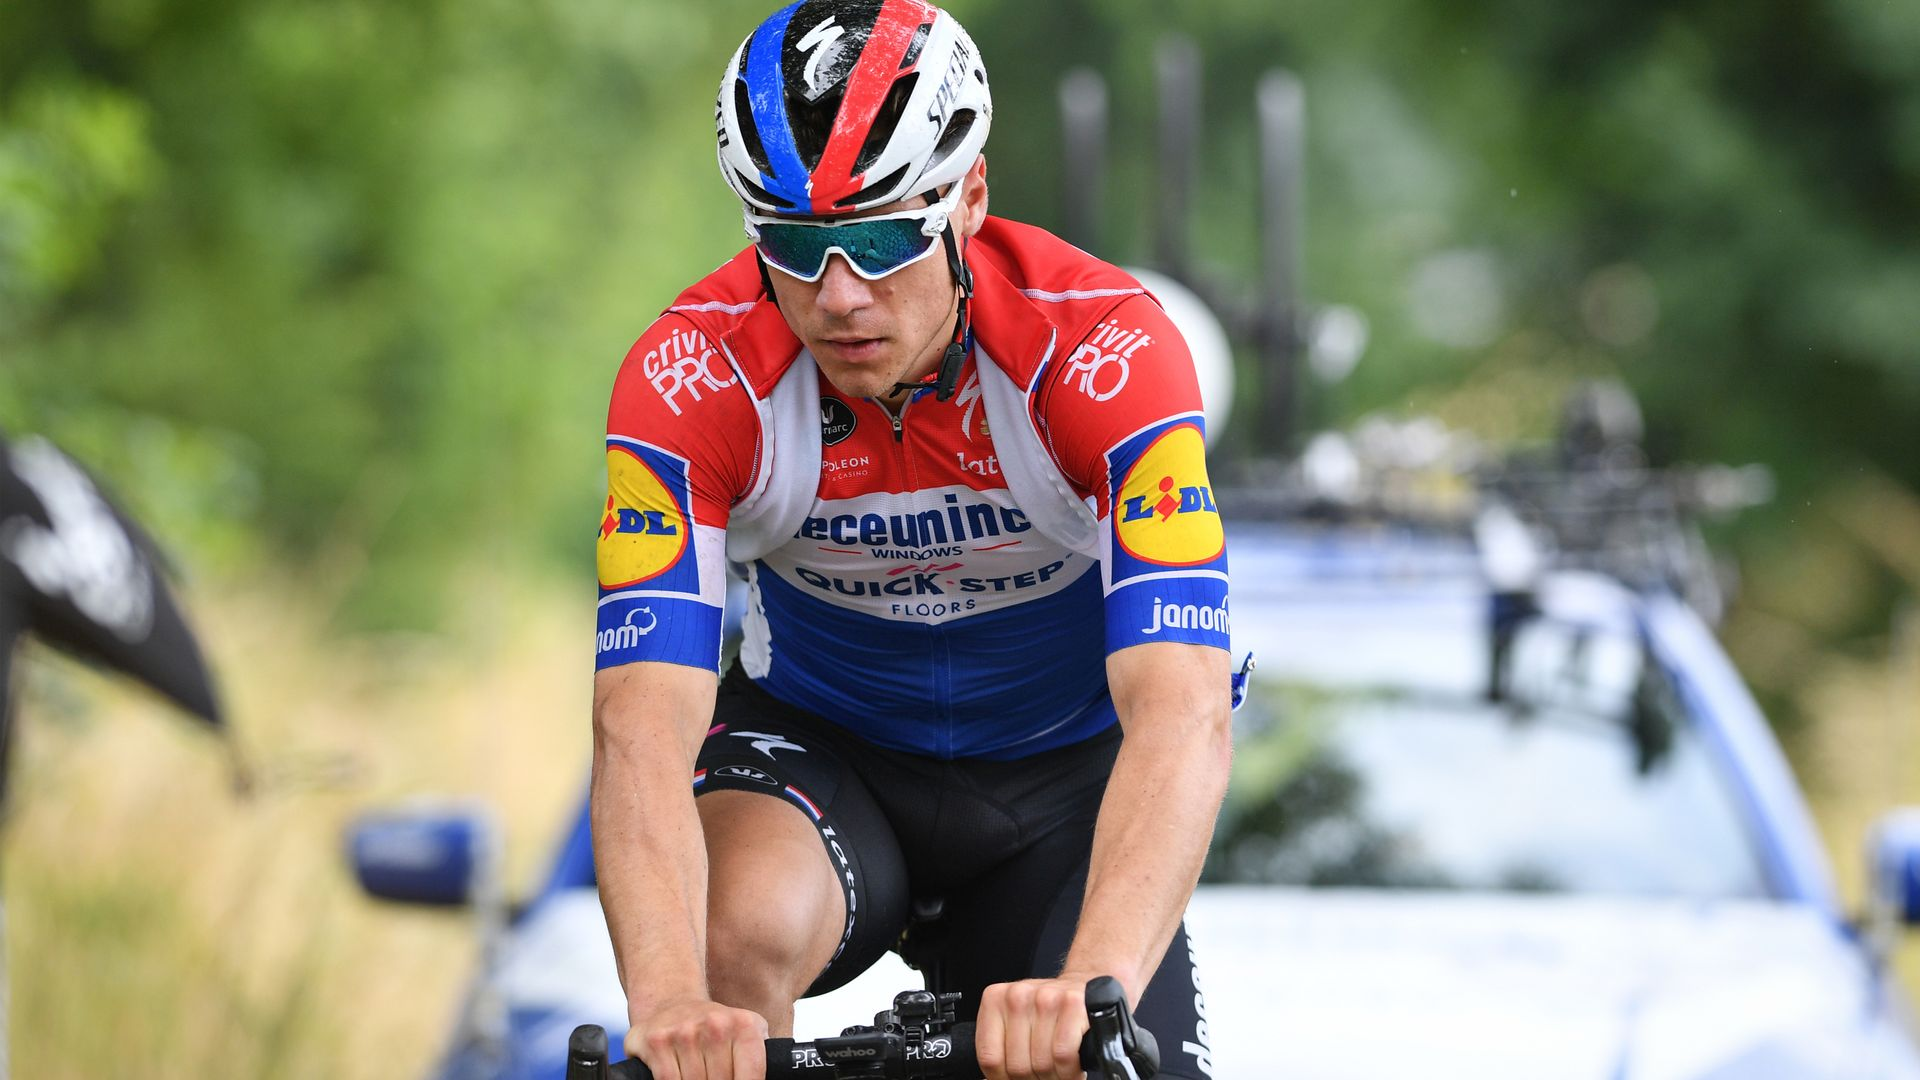 Jakobsen in 'good' condition after being woken from coma